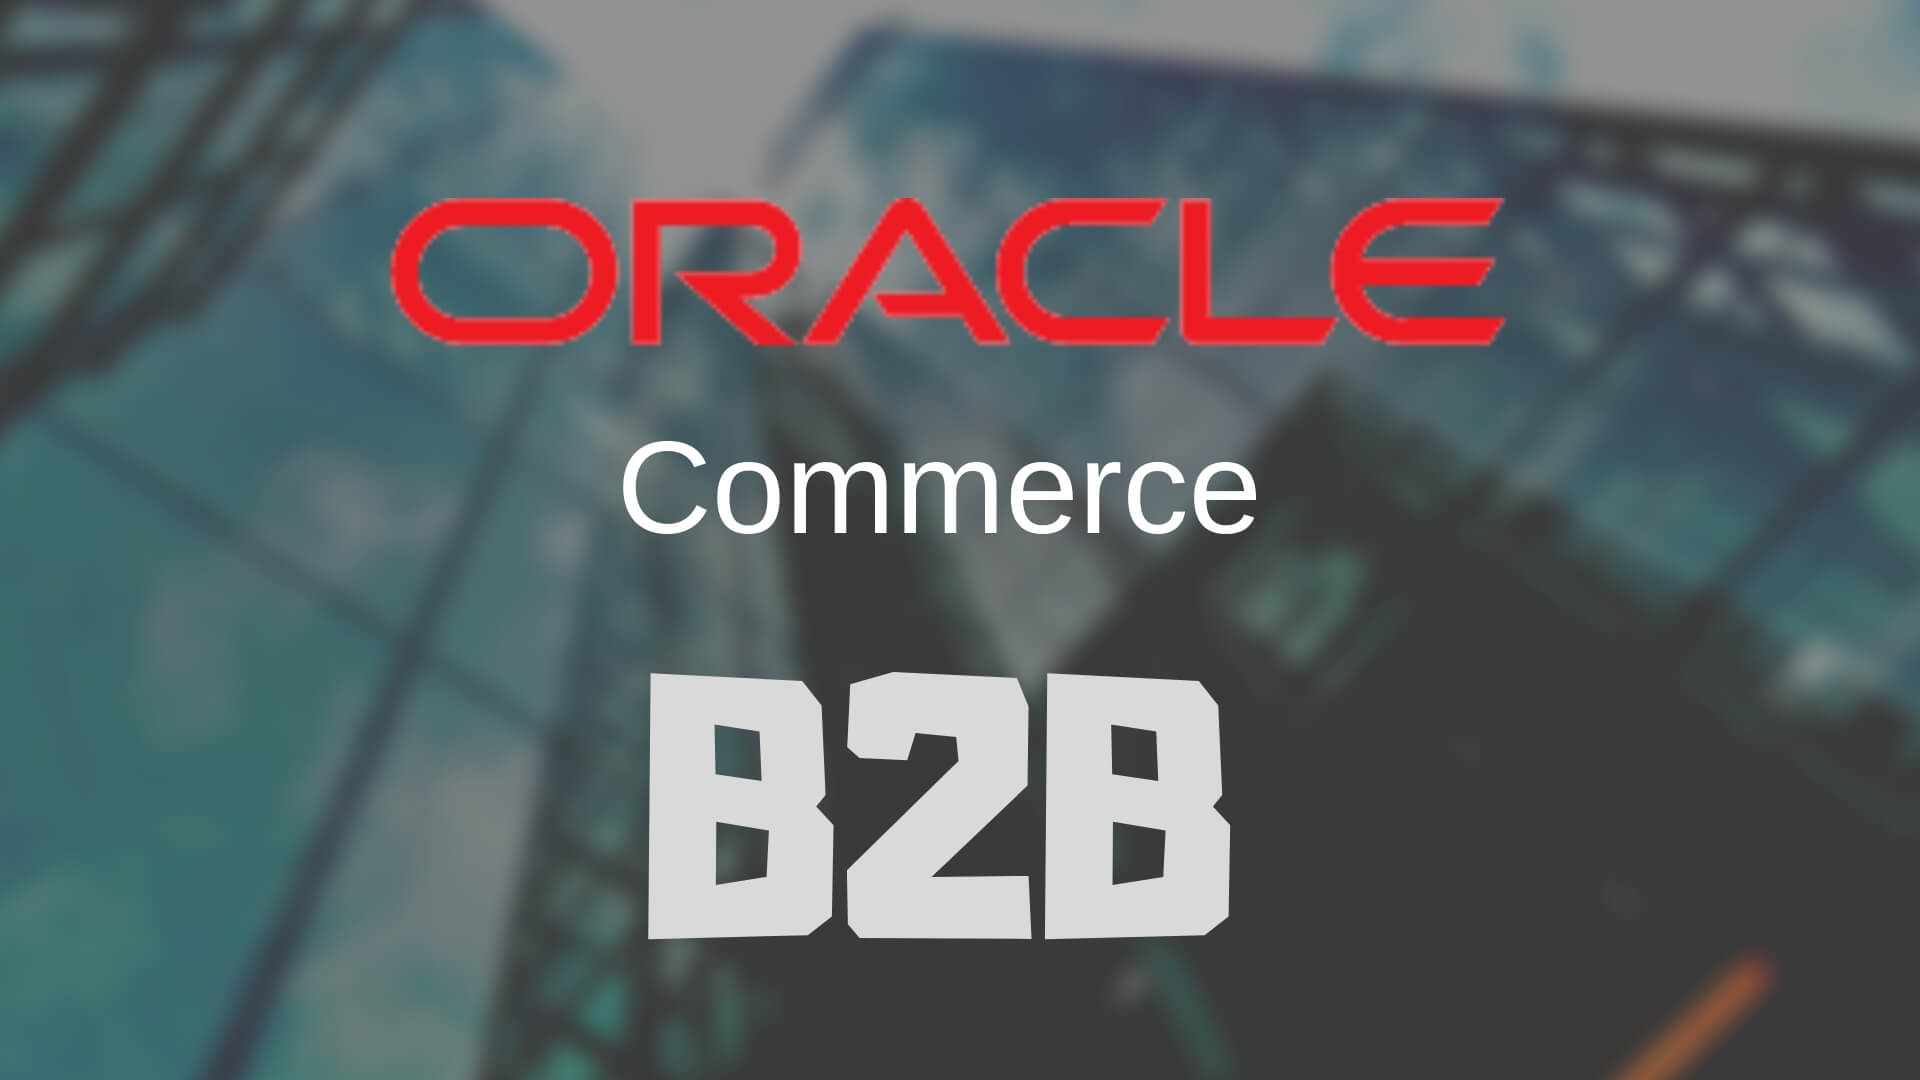 Oracle commerce B2B